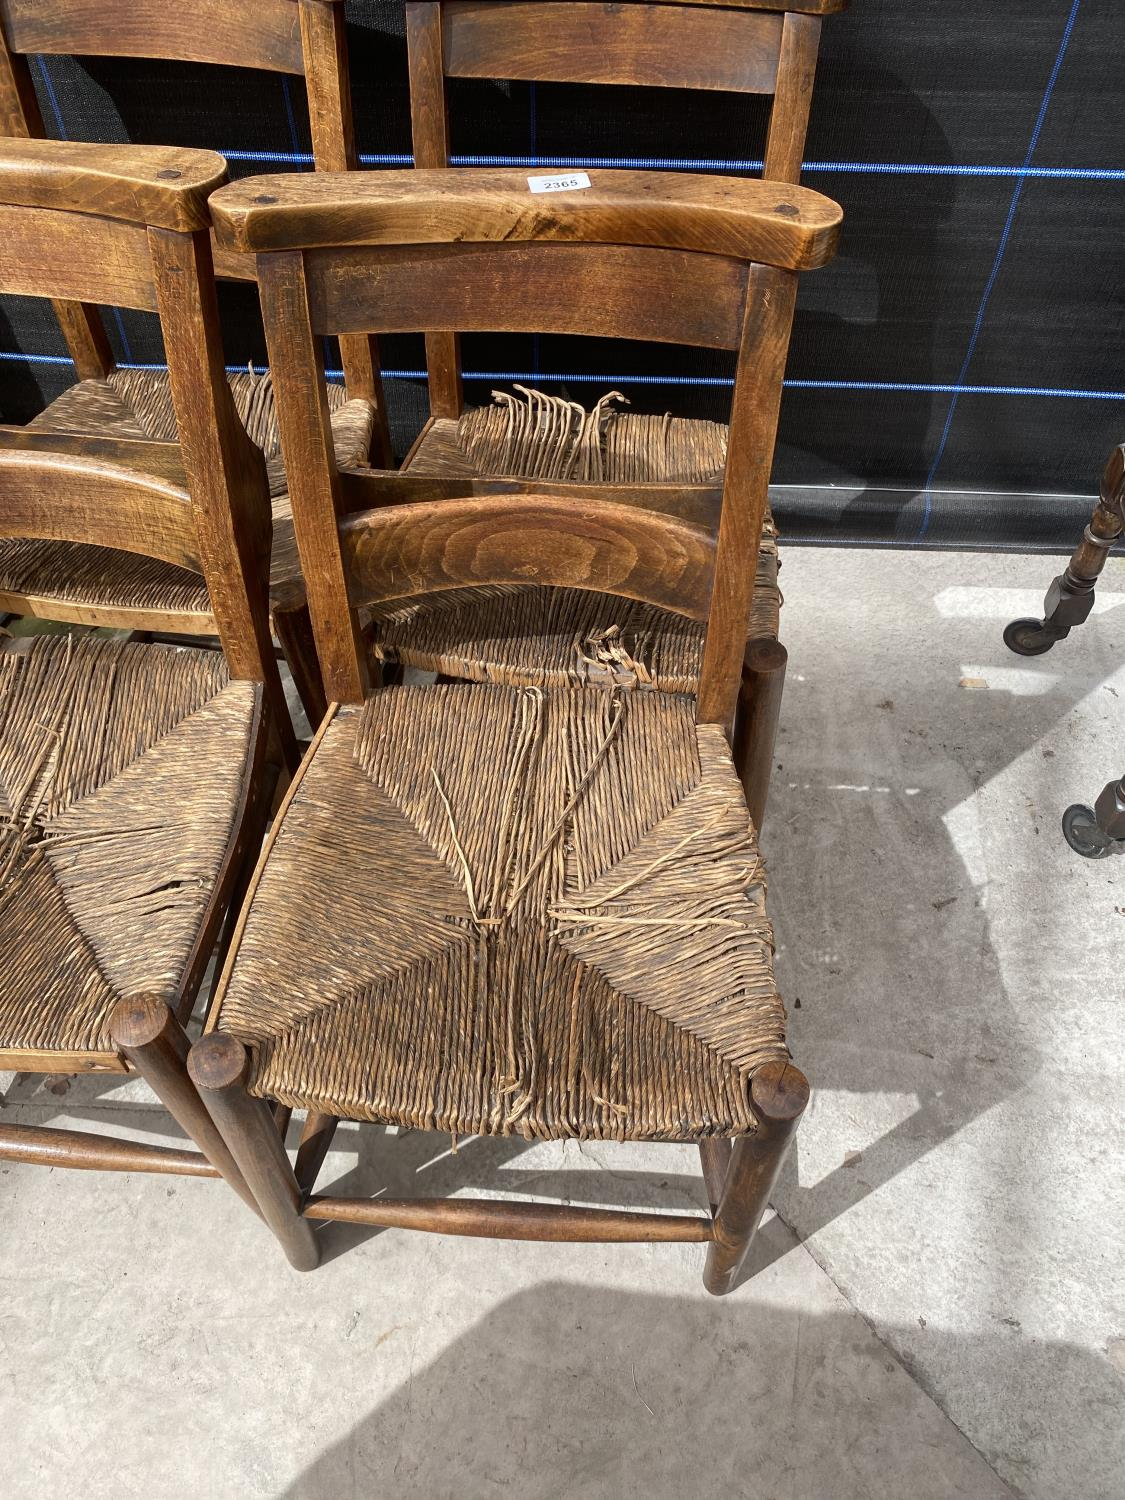 FOUR BEECH FRAMED CHAPEL CHAIRS WITH RUSH SEATS - Image 2 of 5